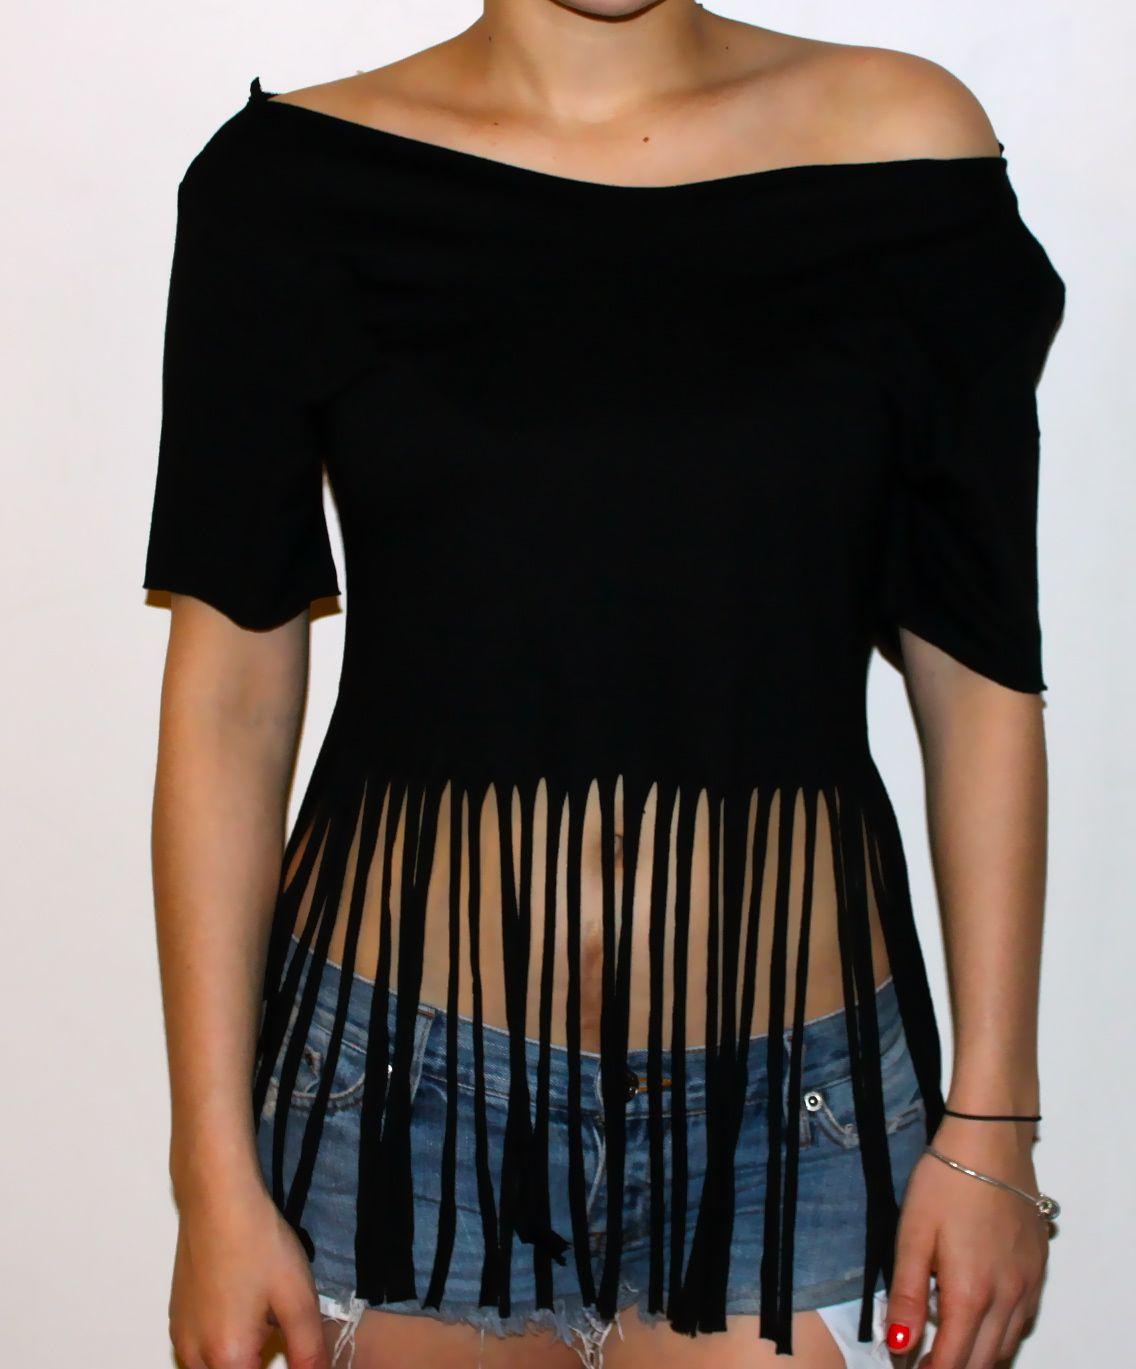 t shirt cutting ideas | diy: fringe t-shirt : cheap chic obsession